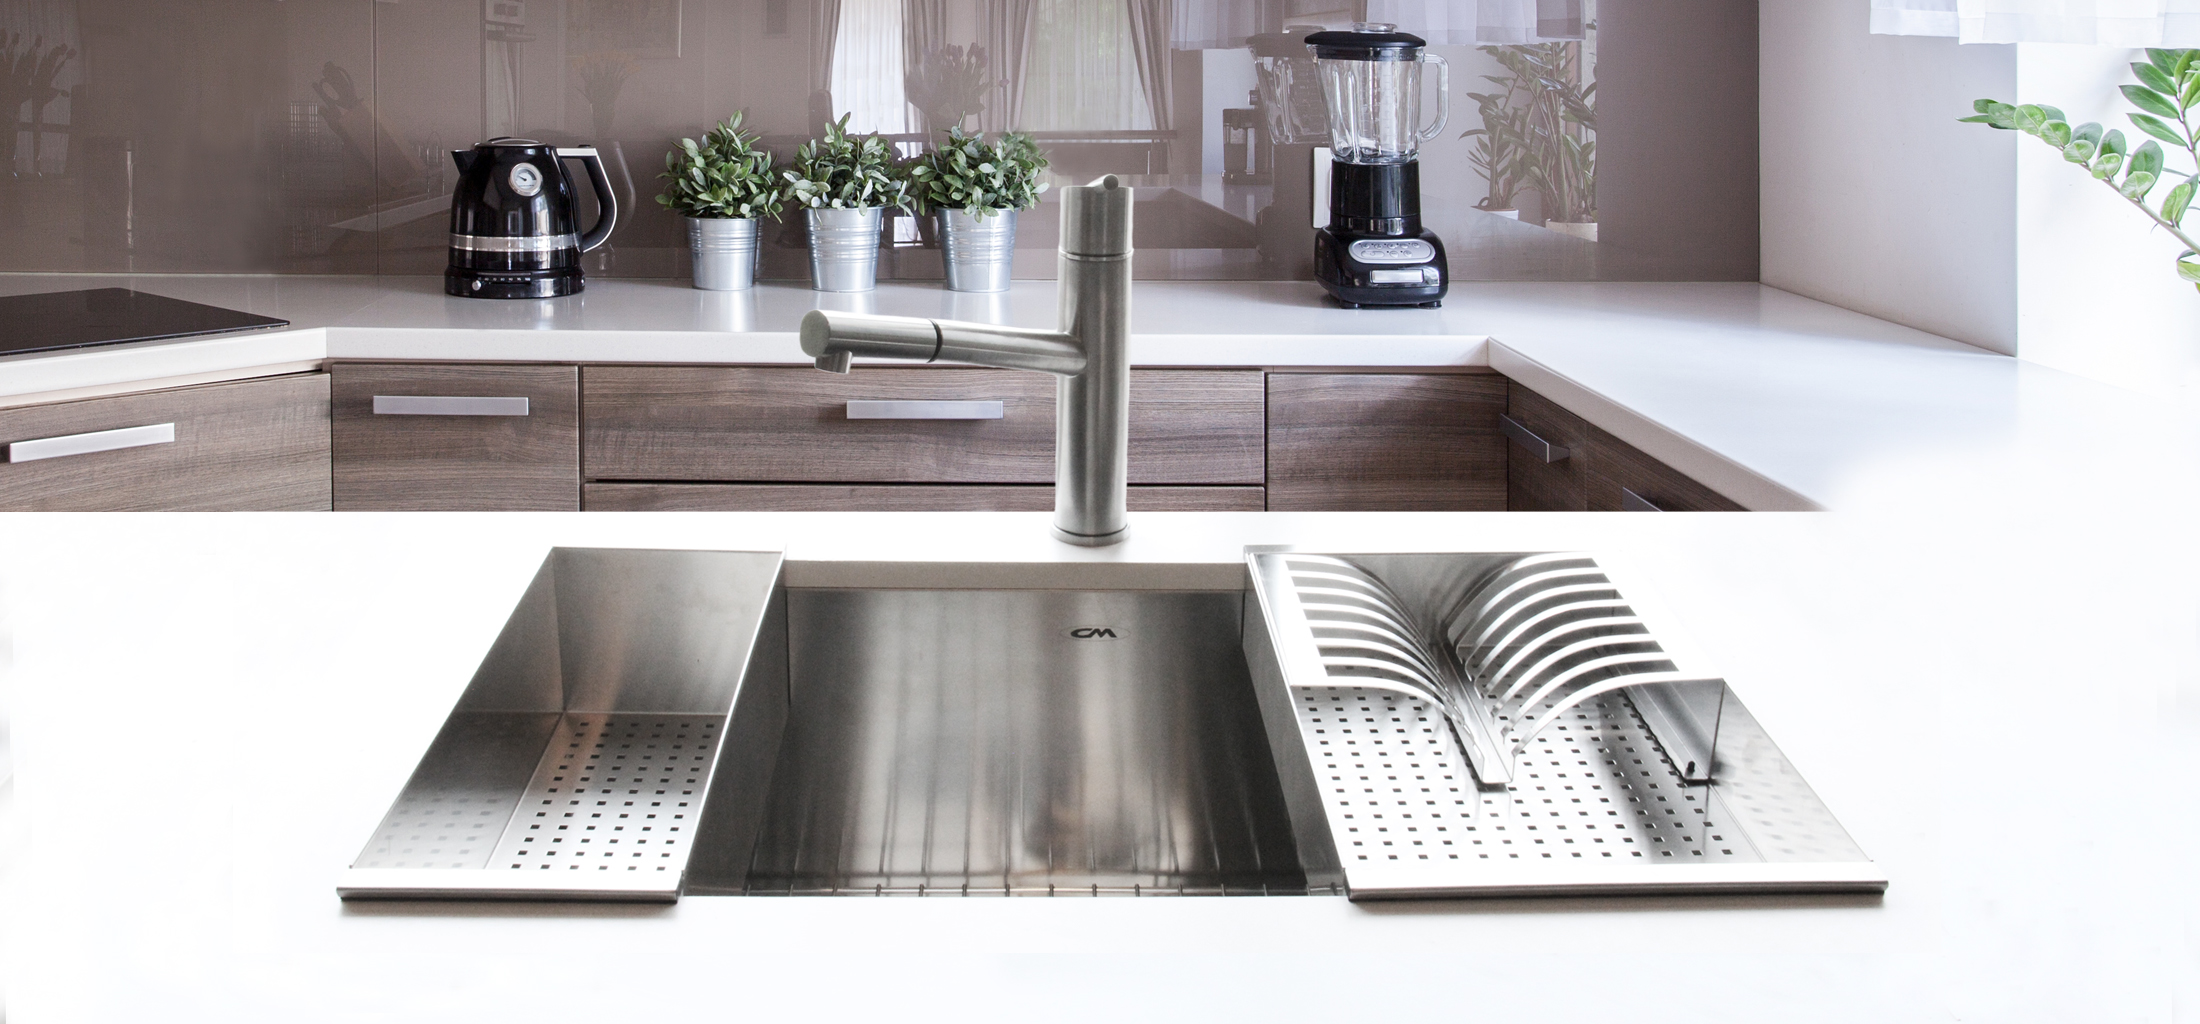 Oaks Kitchen & Bath Ltd – Quality European Kitchen Sinks & Faucets